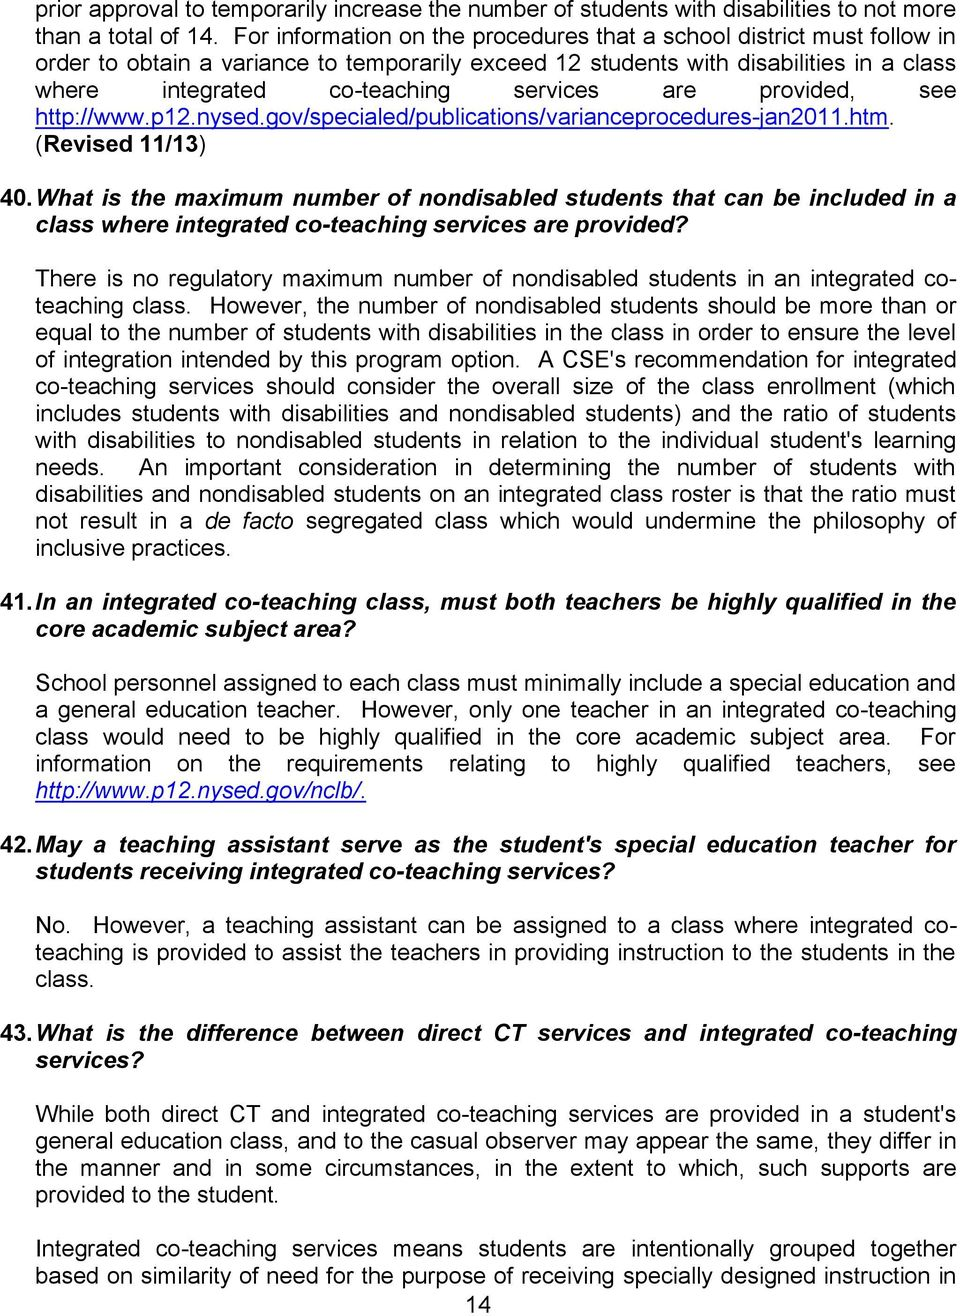 are provided, see http://www.p12.nysed.gov/specialed/publications/varianceprocedures-jan2011.htm. (Revised 11/13) 40.